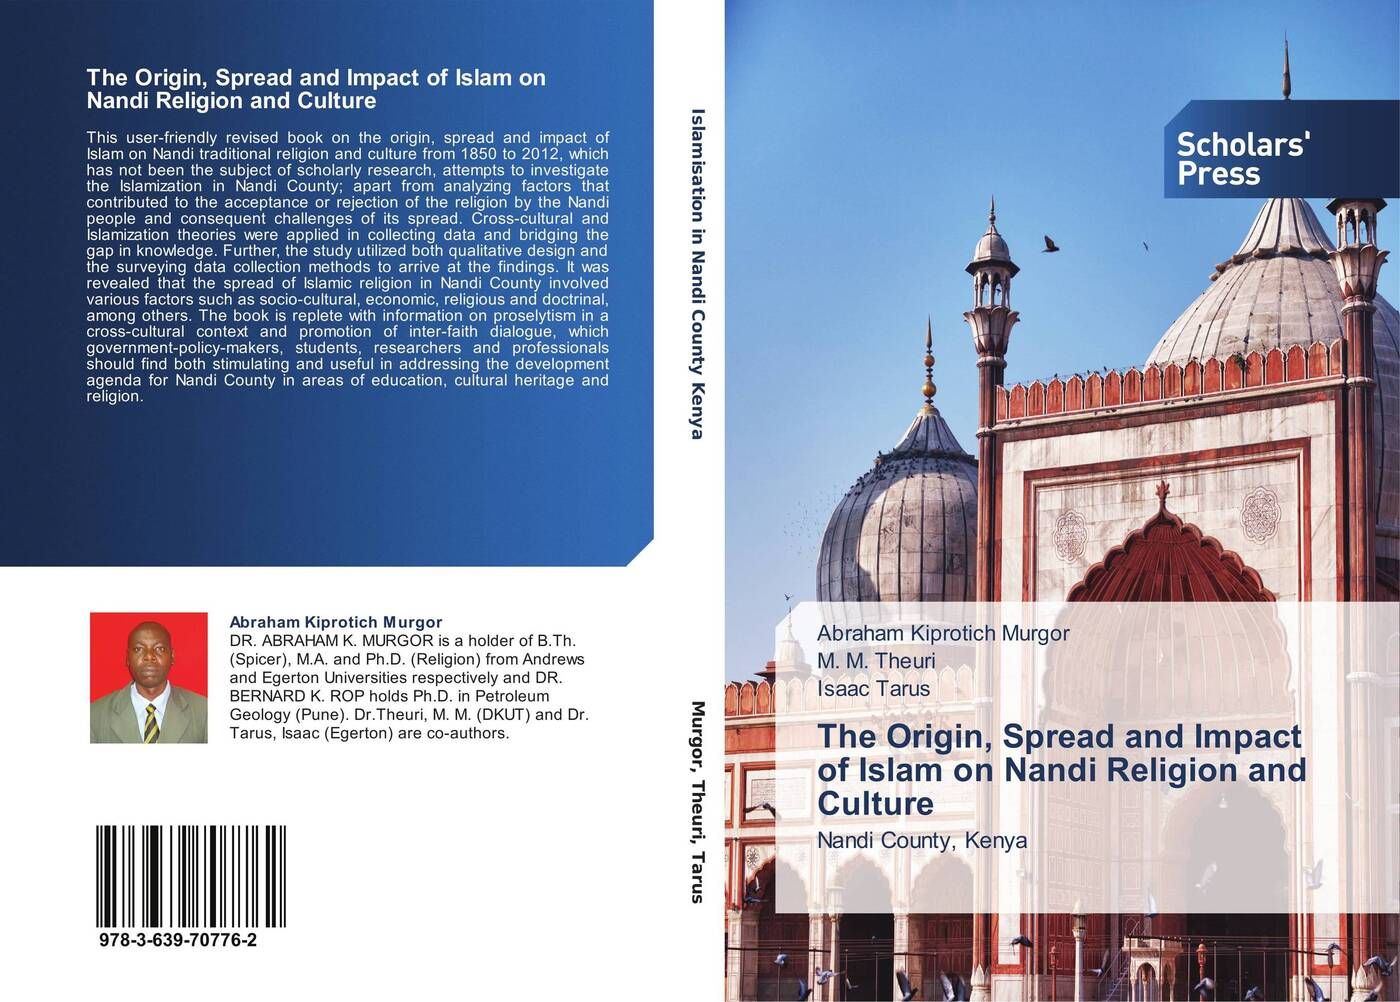 Abraham Kiprotich Murgor,M. M. Theuri and Isaac Tarus The Origin, Spread and Impact of Islam on Nandi Religion and Culture nandi eckerson talkin to a man